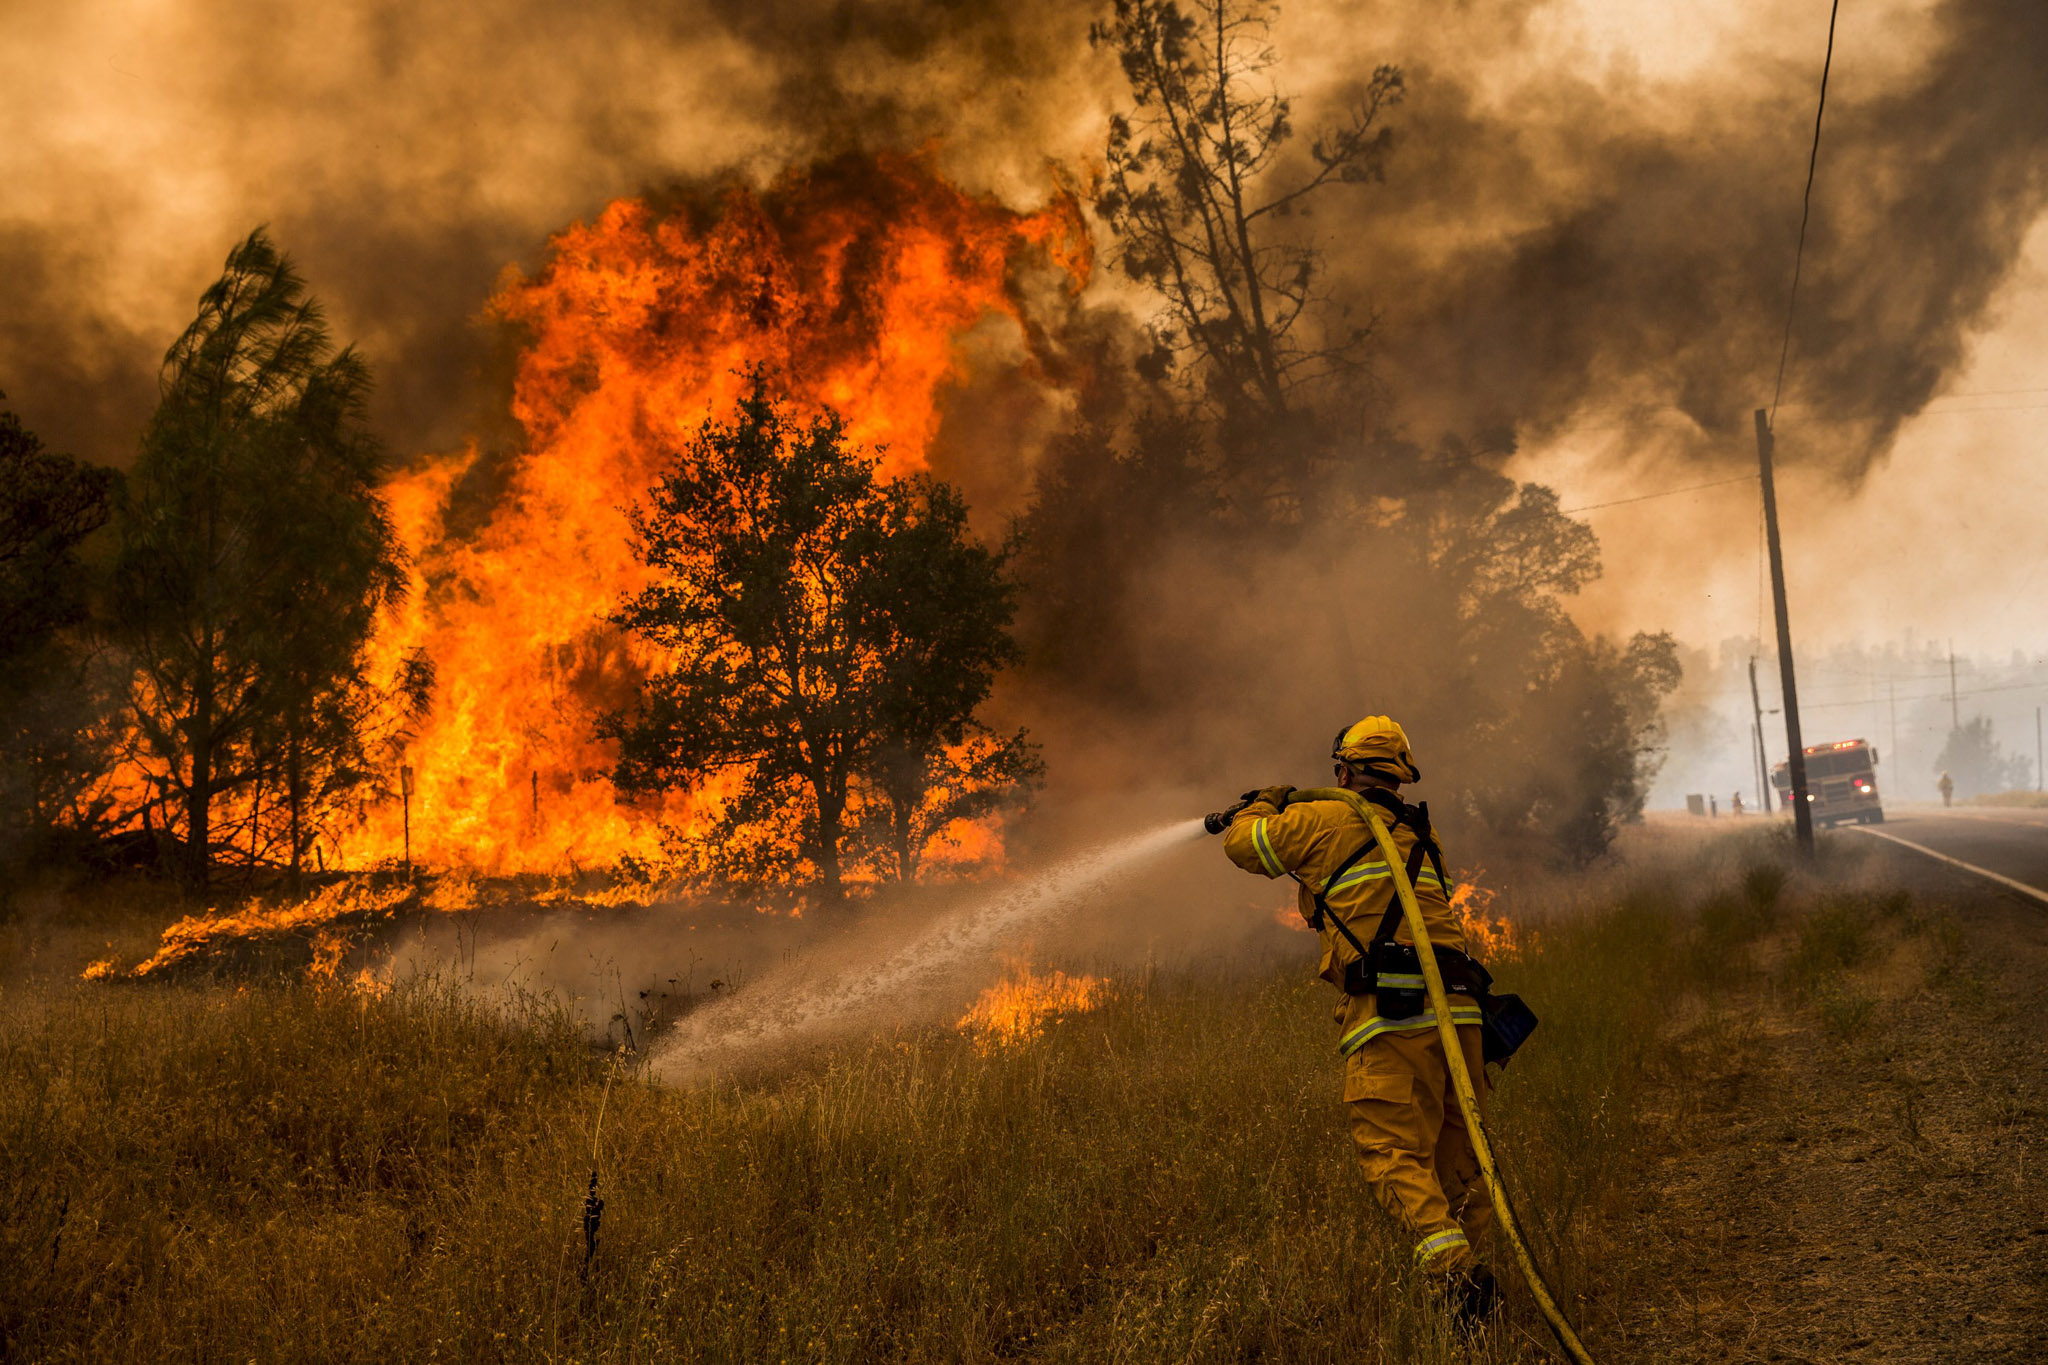 A firefighter battles a spot fire at the Rocky Fire in Lake County, California